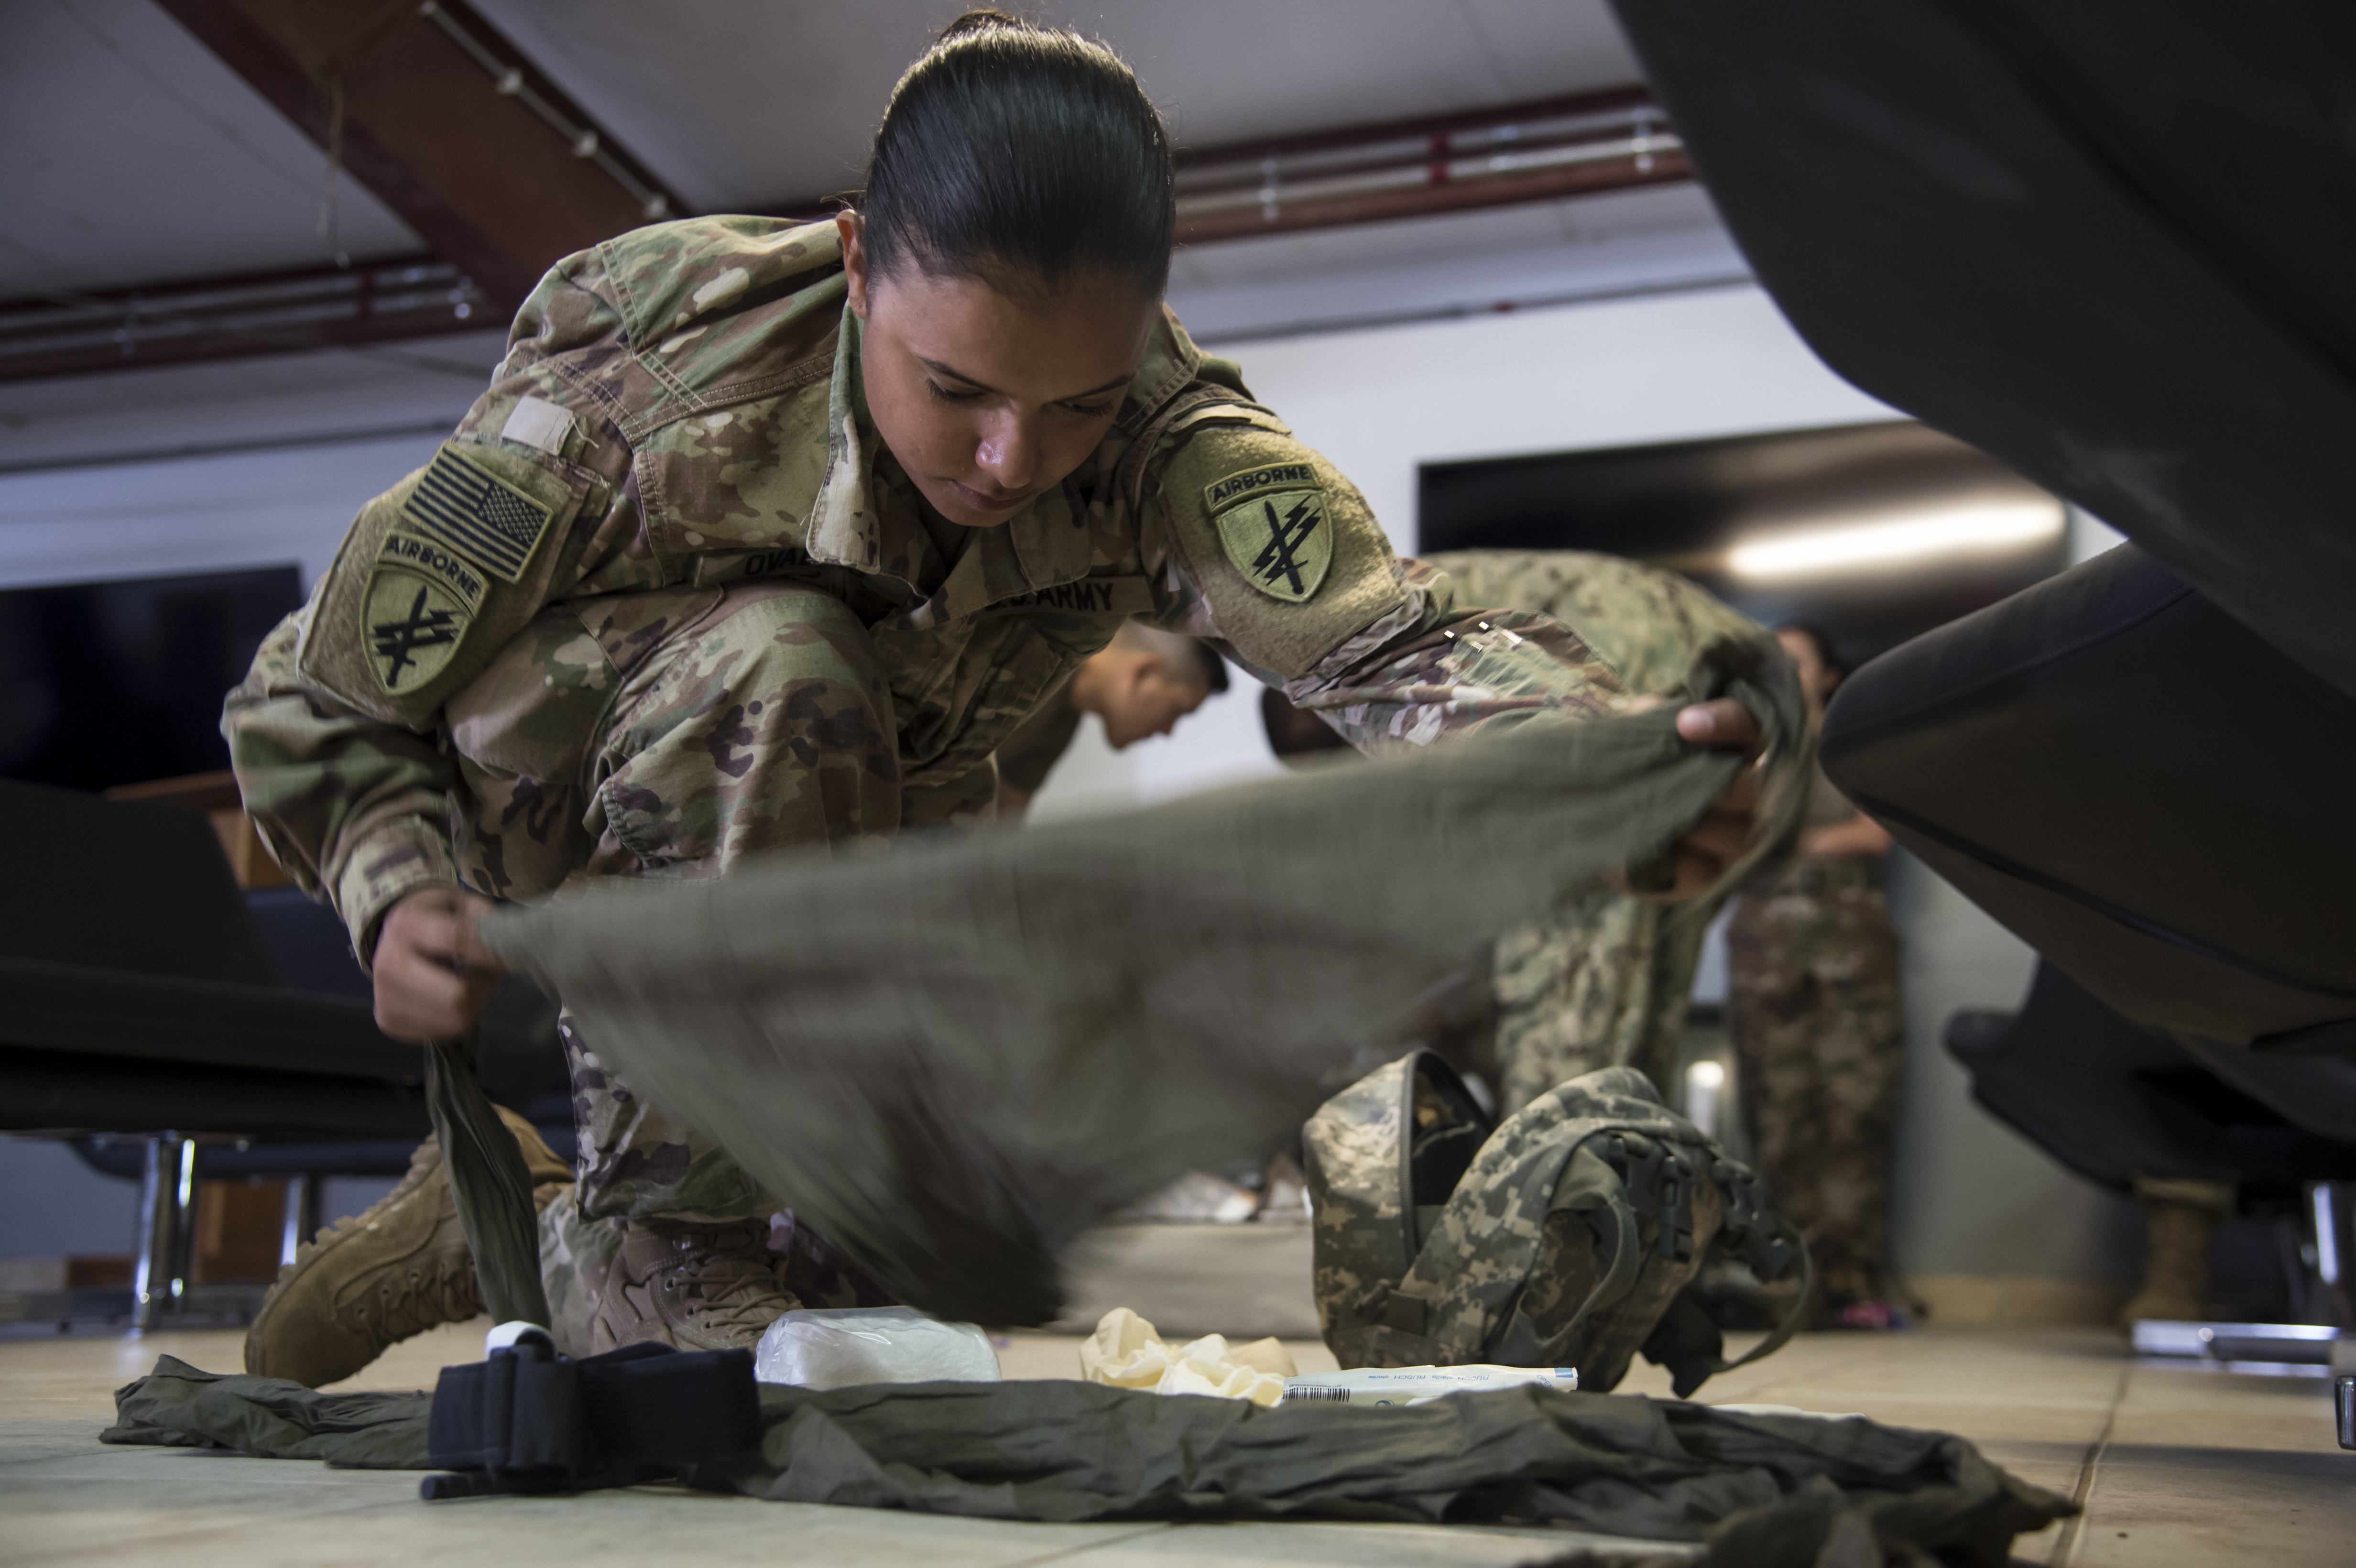 U.S. Army Sgt. Marina Ovalles, Combined Joint Task Force-Horn of Africa supply sergeant, prepares her medical supply kit for the practical application assessment portion of the test to certify in the combat lifesaver course held on Camp Lemonnier, Djibouti, Sept. 15, 2017. The five-day course consists of 40 hours of blended classroom and hands-on training given by certified combat medics, and is open to all military branches here. (U.S. Air National Guard photo by Tech. Sgt. Joe Harwood)